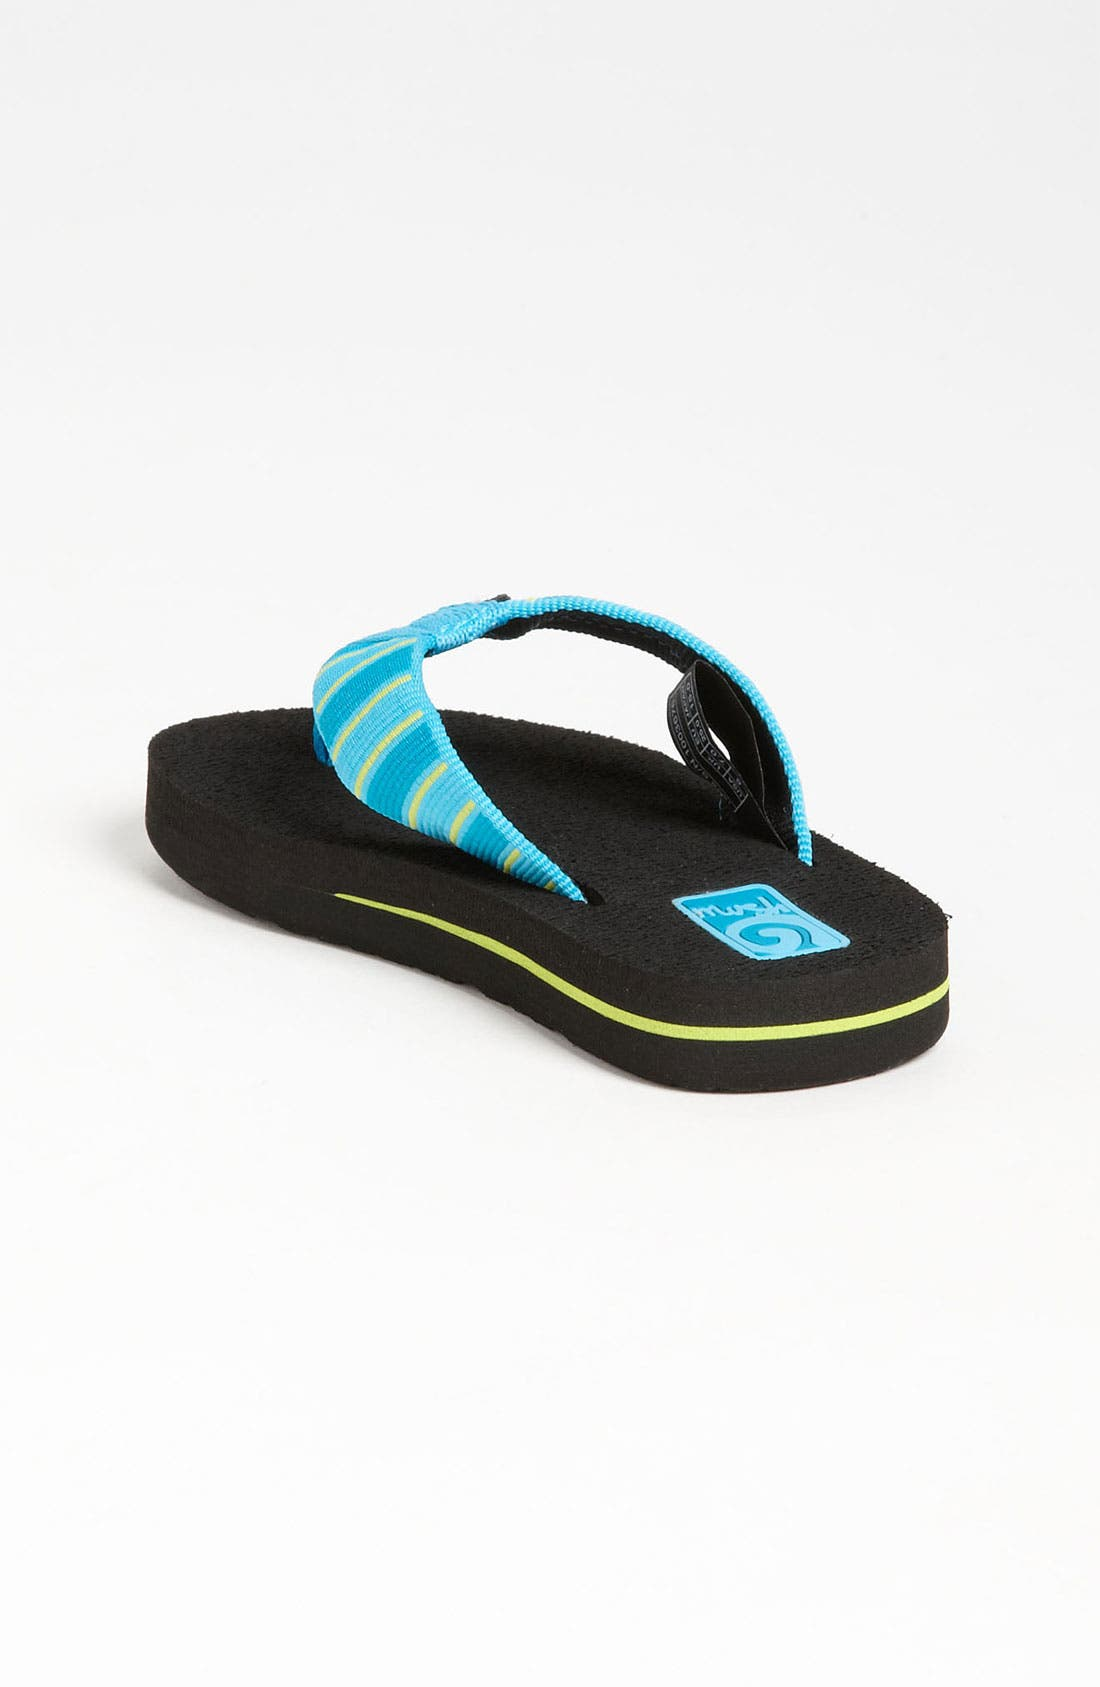 Alternate Image 2  - Teva 'Mush' Sandal (Toddler, Little Kid & Big Kid)